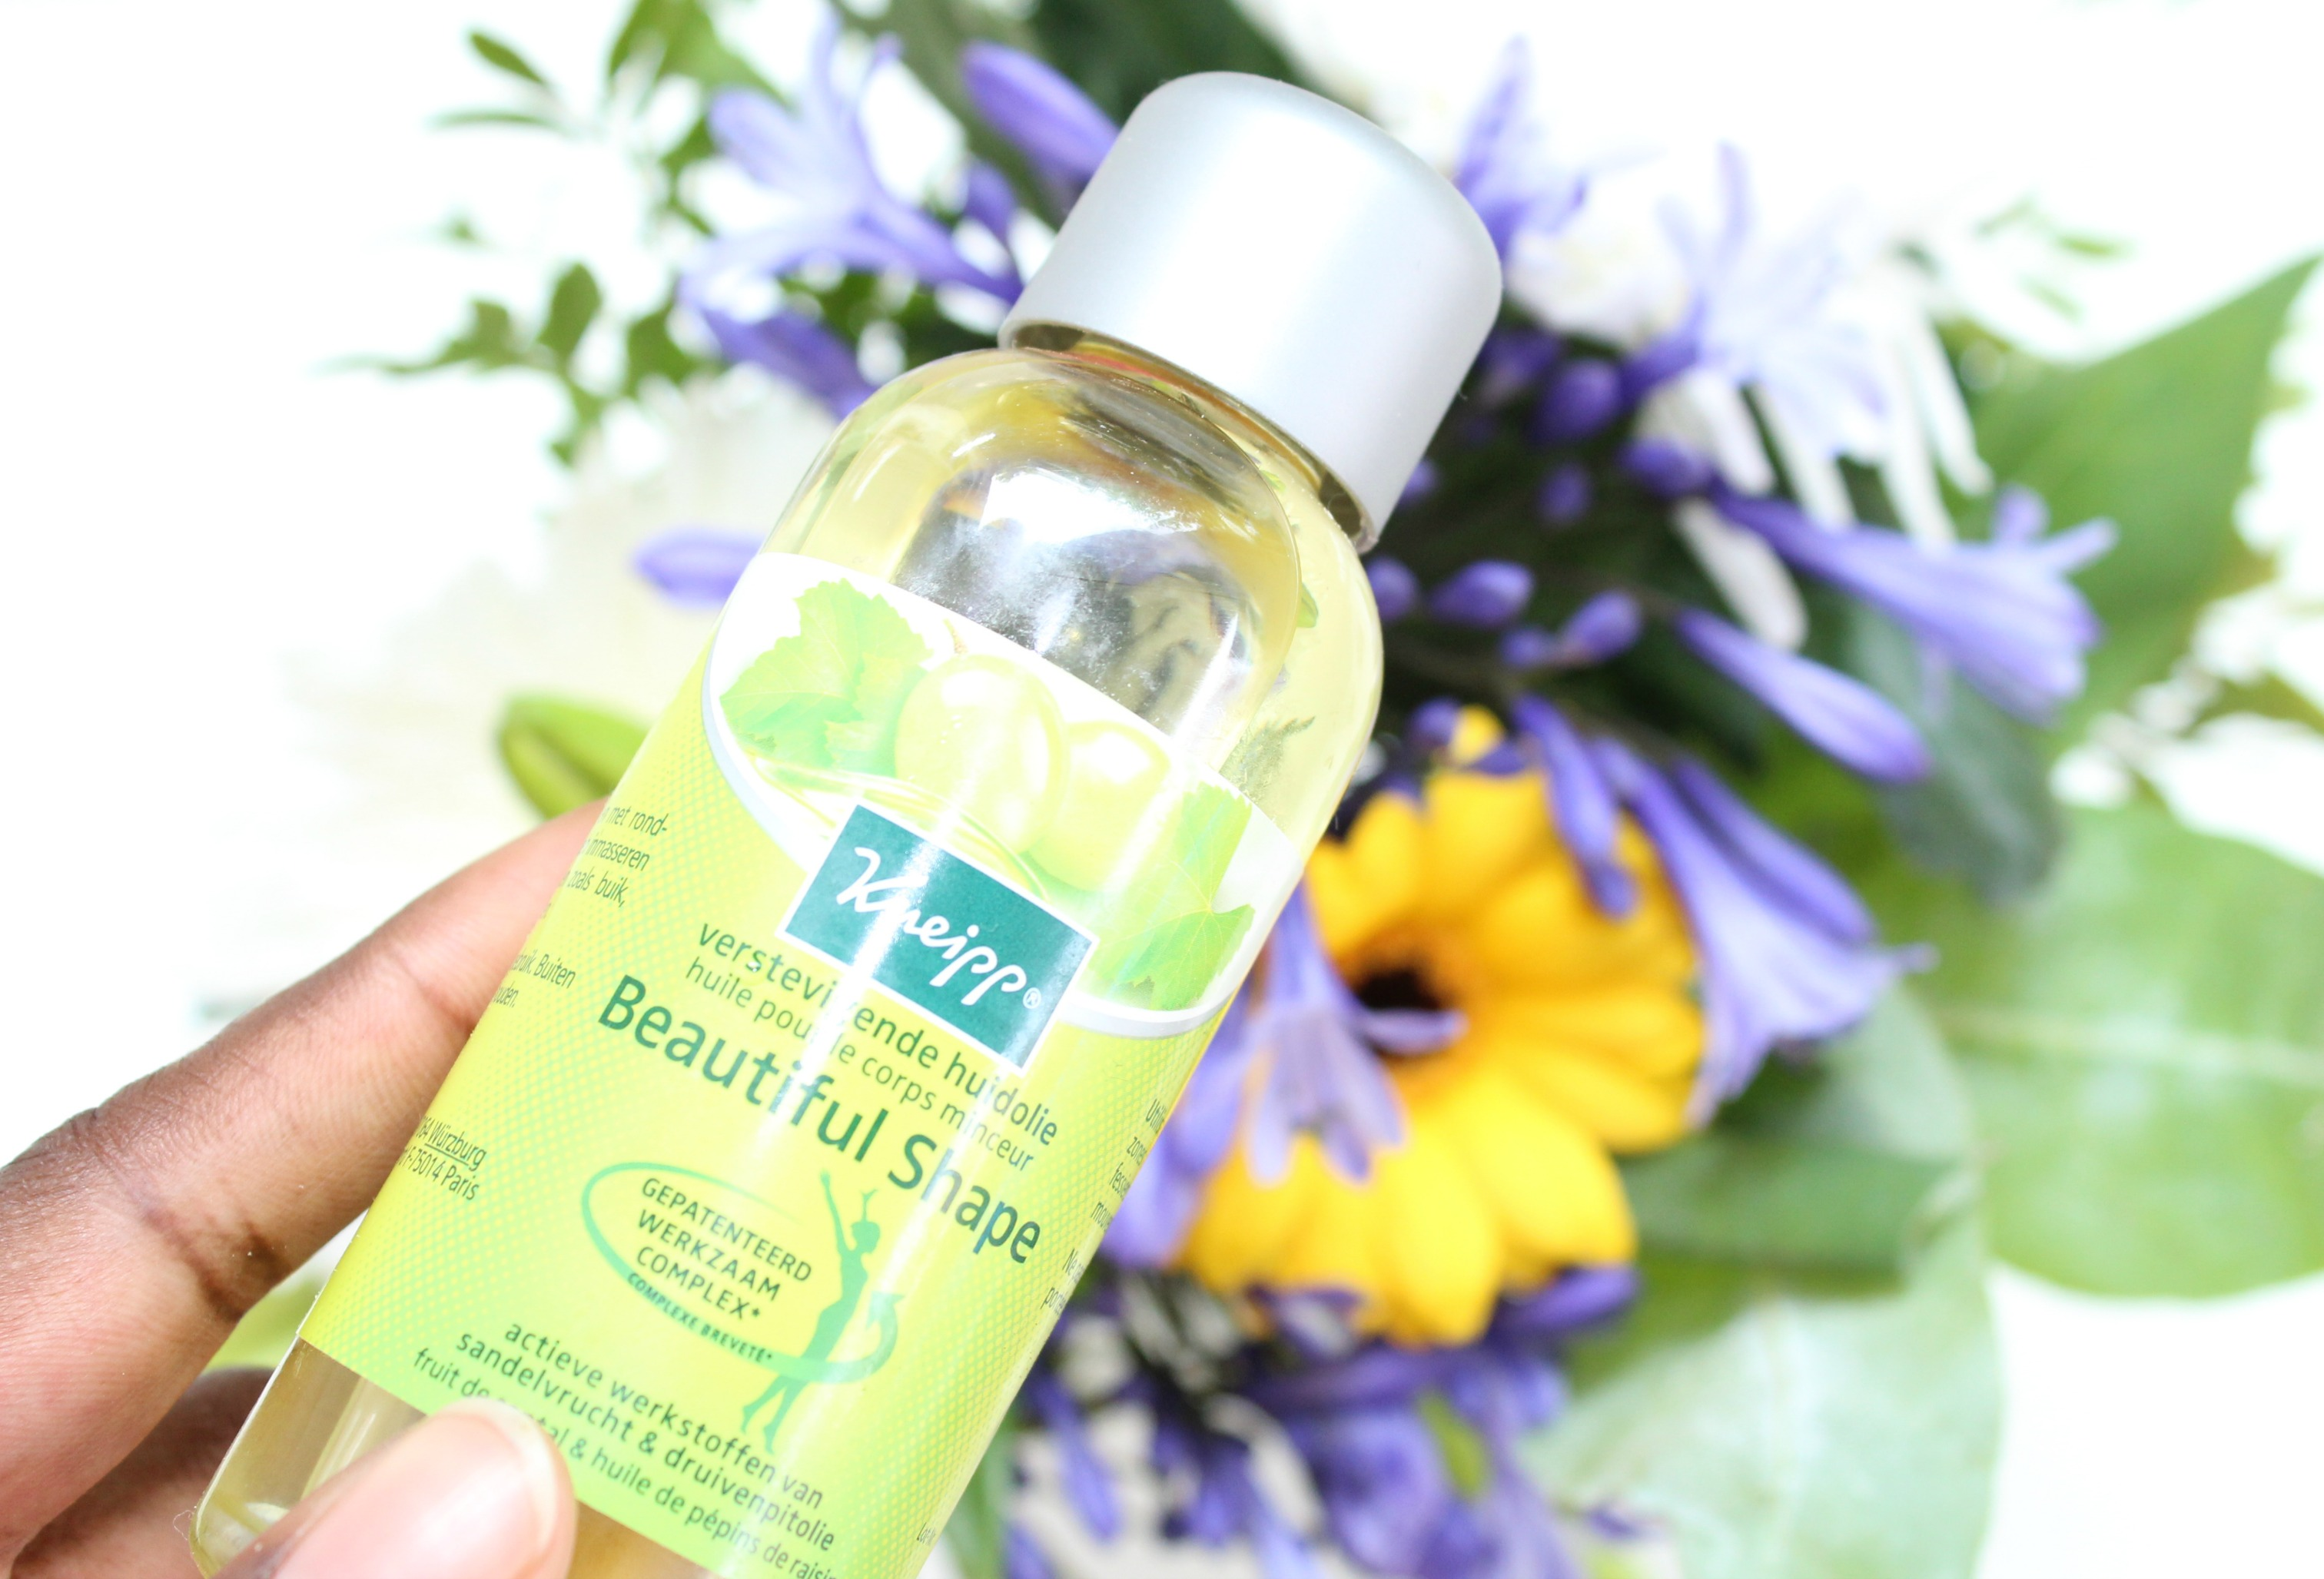 kneipp-beautiful-shape-review-GoodGirlsCompany-Kneipp-wonderolie